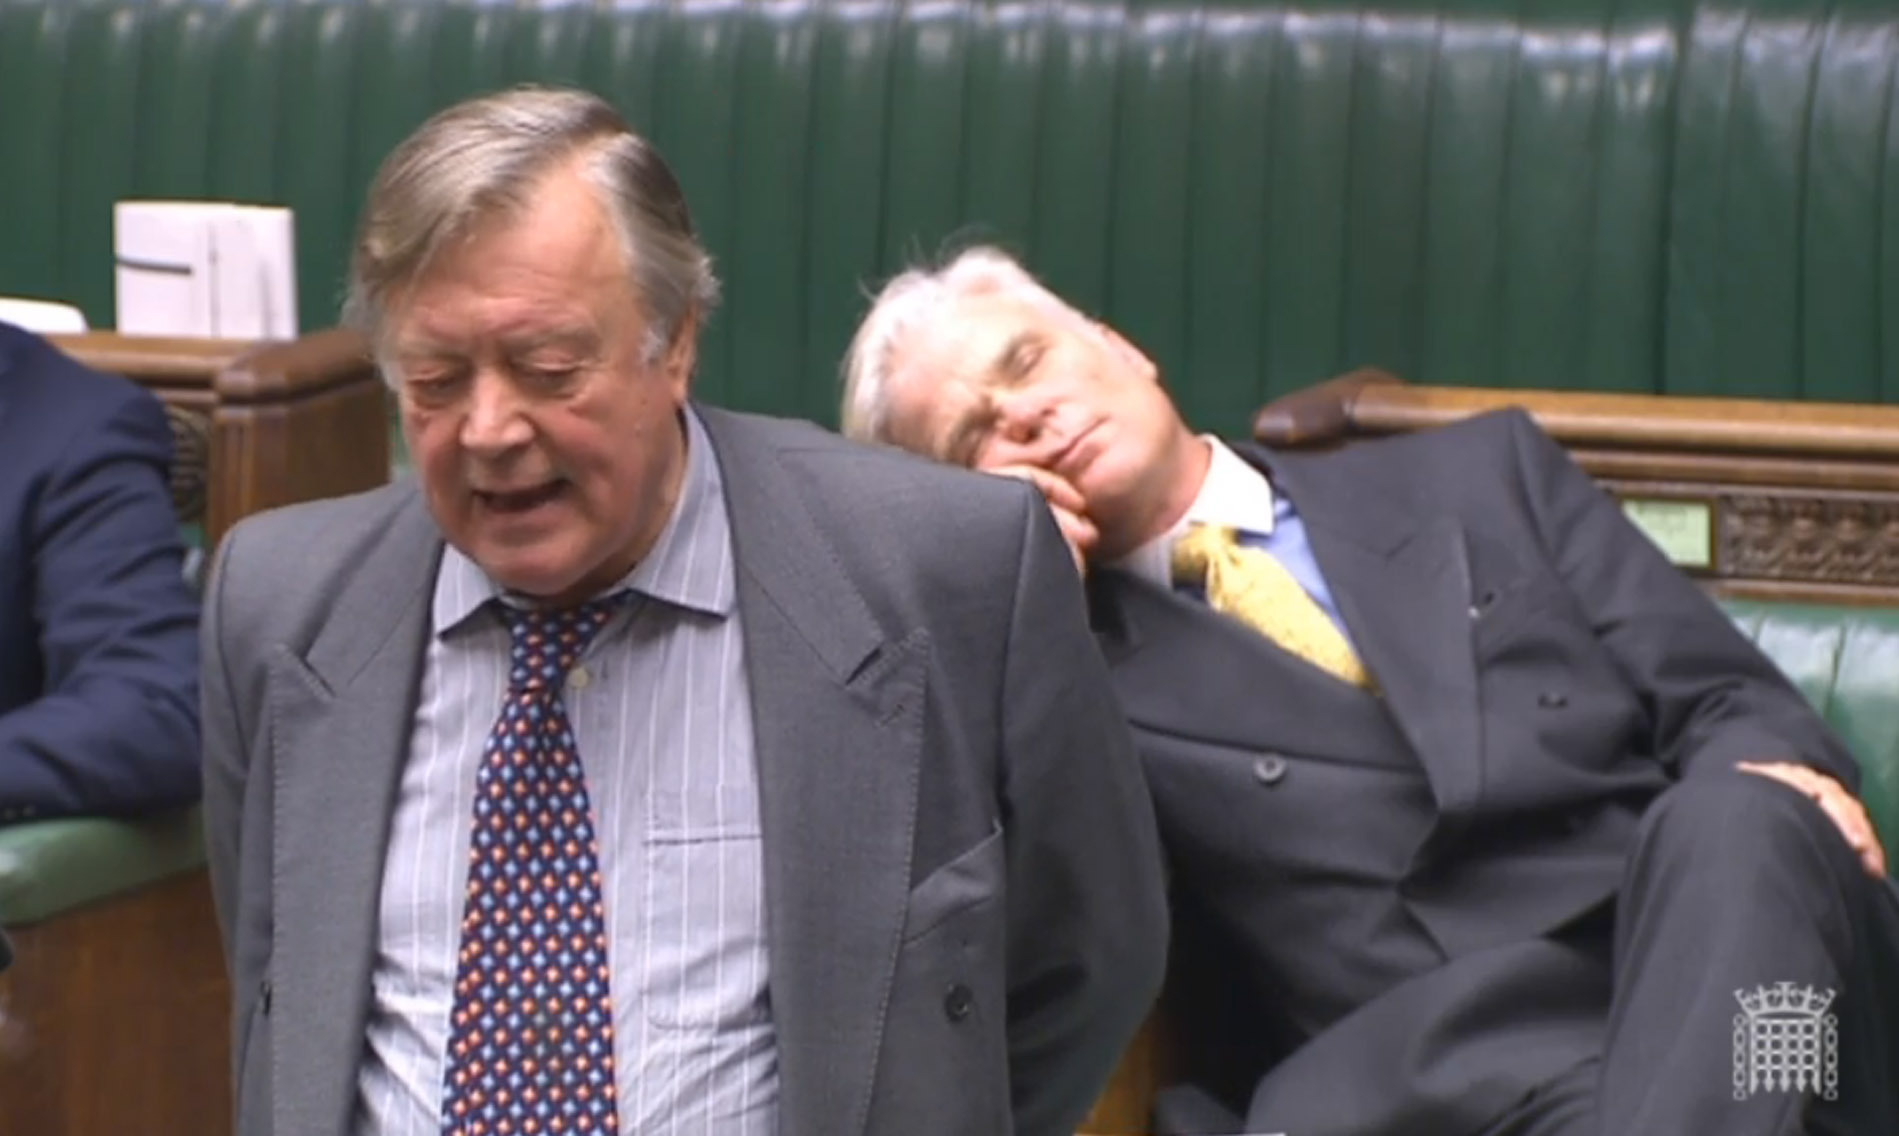 Sir Desmond Swayne MP appearing to sleep as he sits behind former Chancellor Ken Clarke during a House of Commons debate on Brexit.